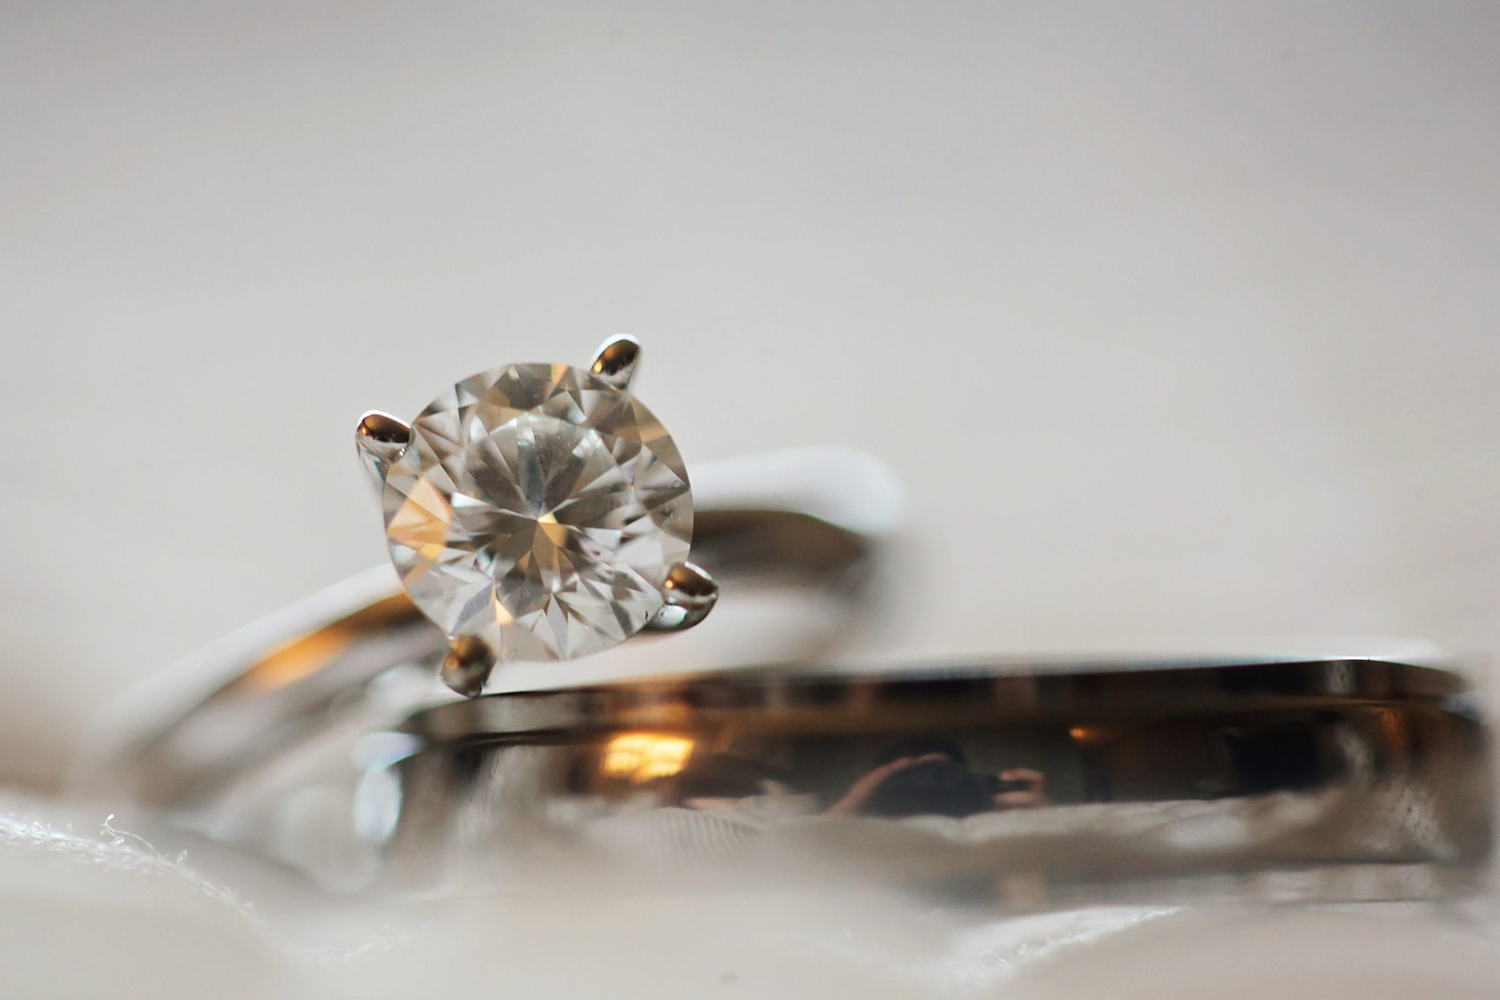 a close up picture of a diamond ring with an old european cut diamond